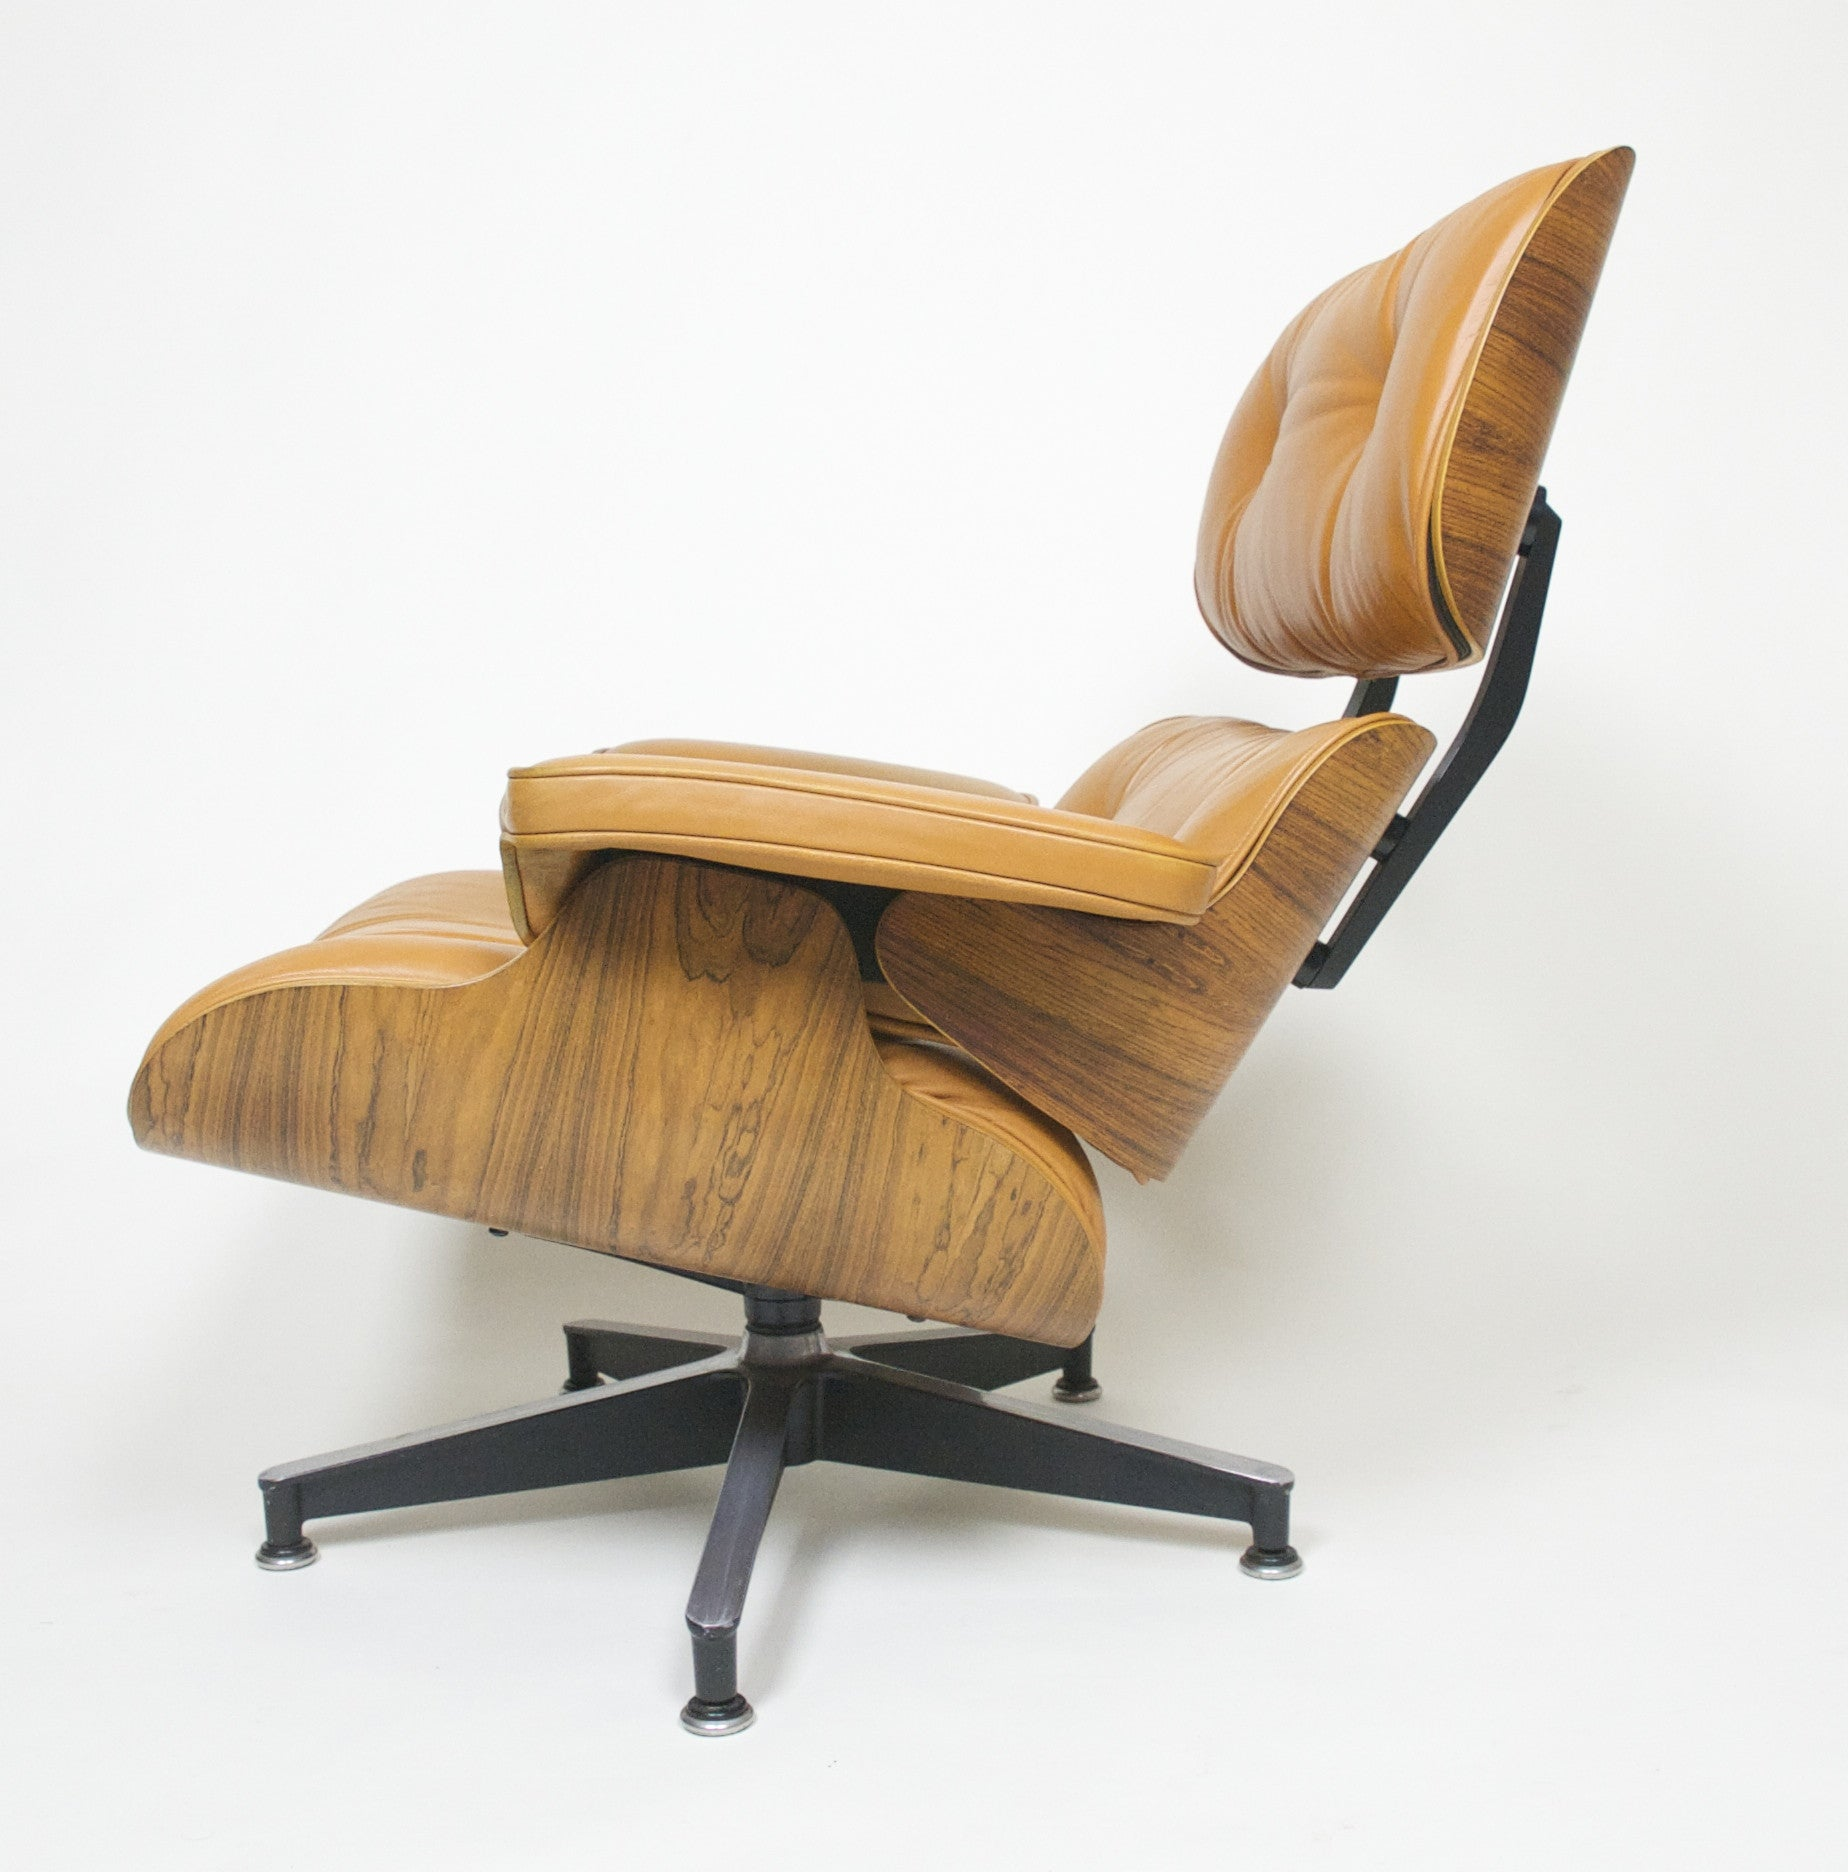 SOLD Herman Miller Eames Lounge Chair & Ottoman Rosewood 670 671 Set 2 1970's